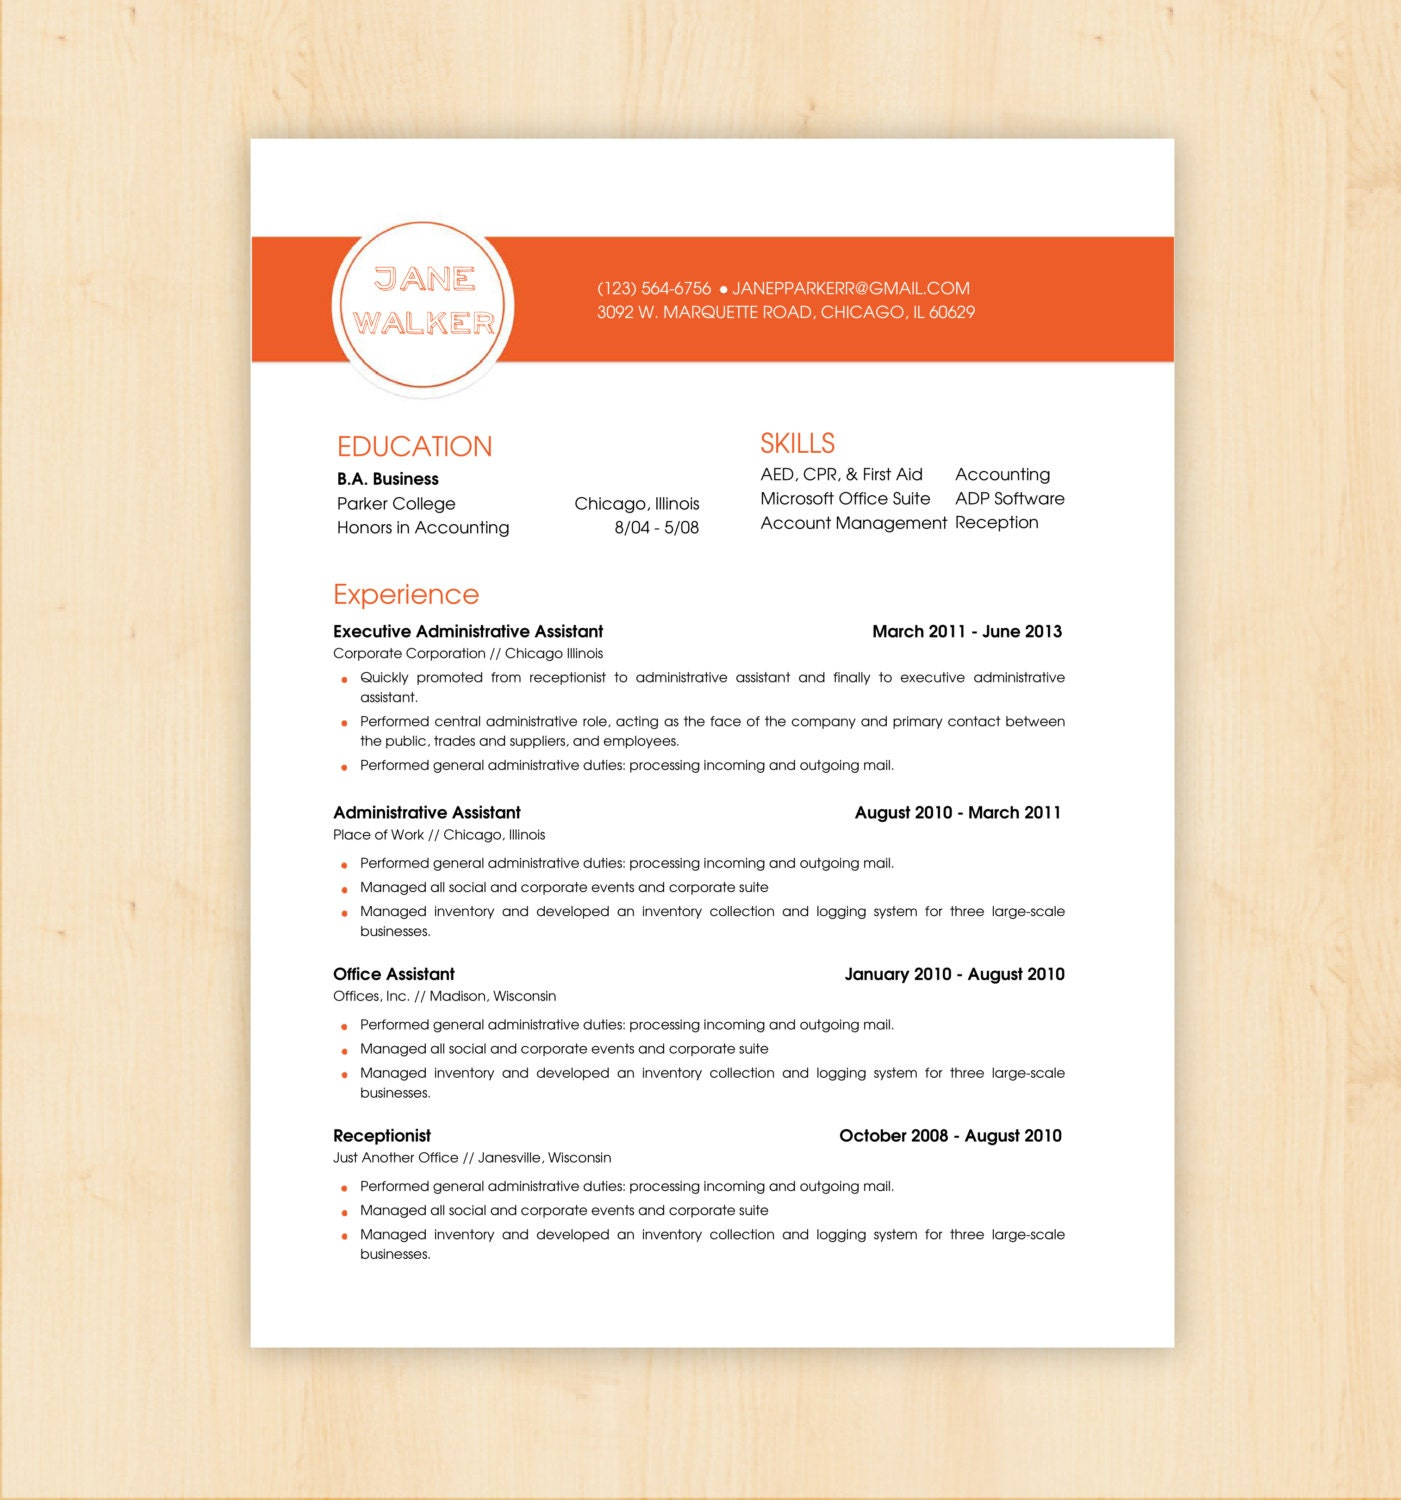 cv templates microsoft word free resume template document blank word resume template word document template pinterest - Free Resume Templates Word Document